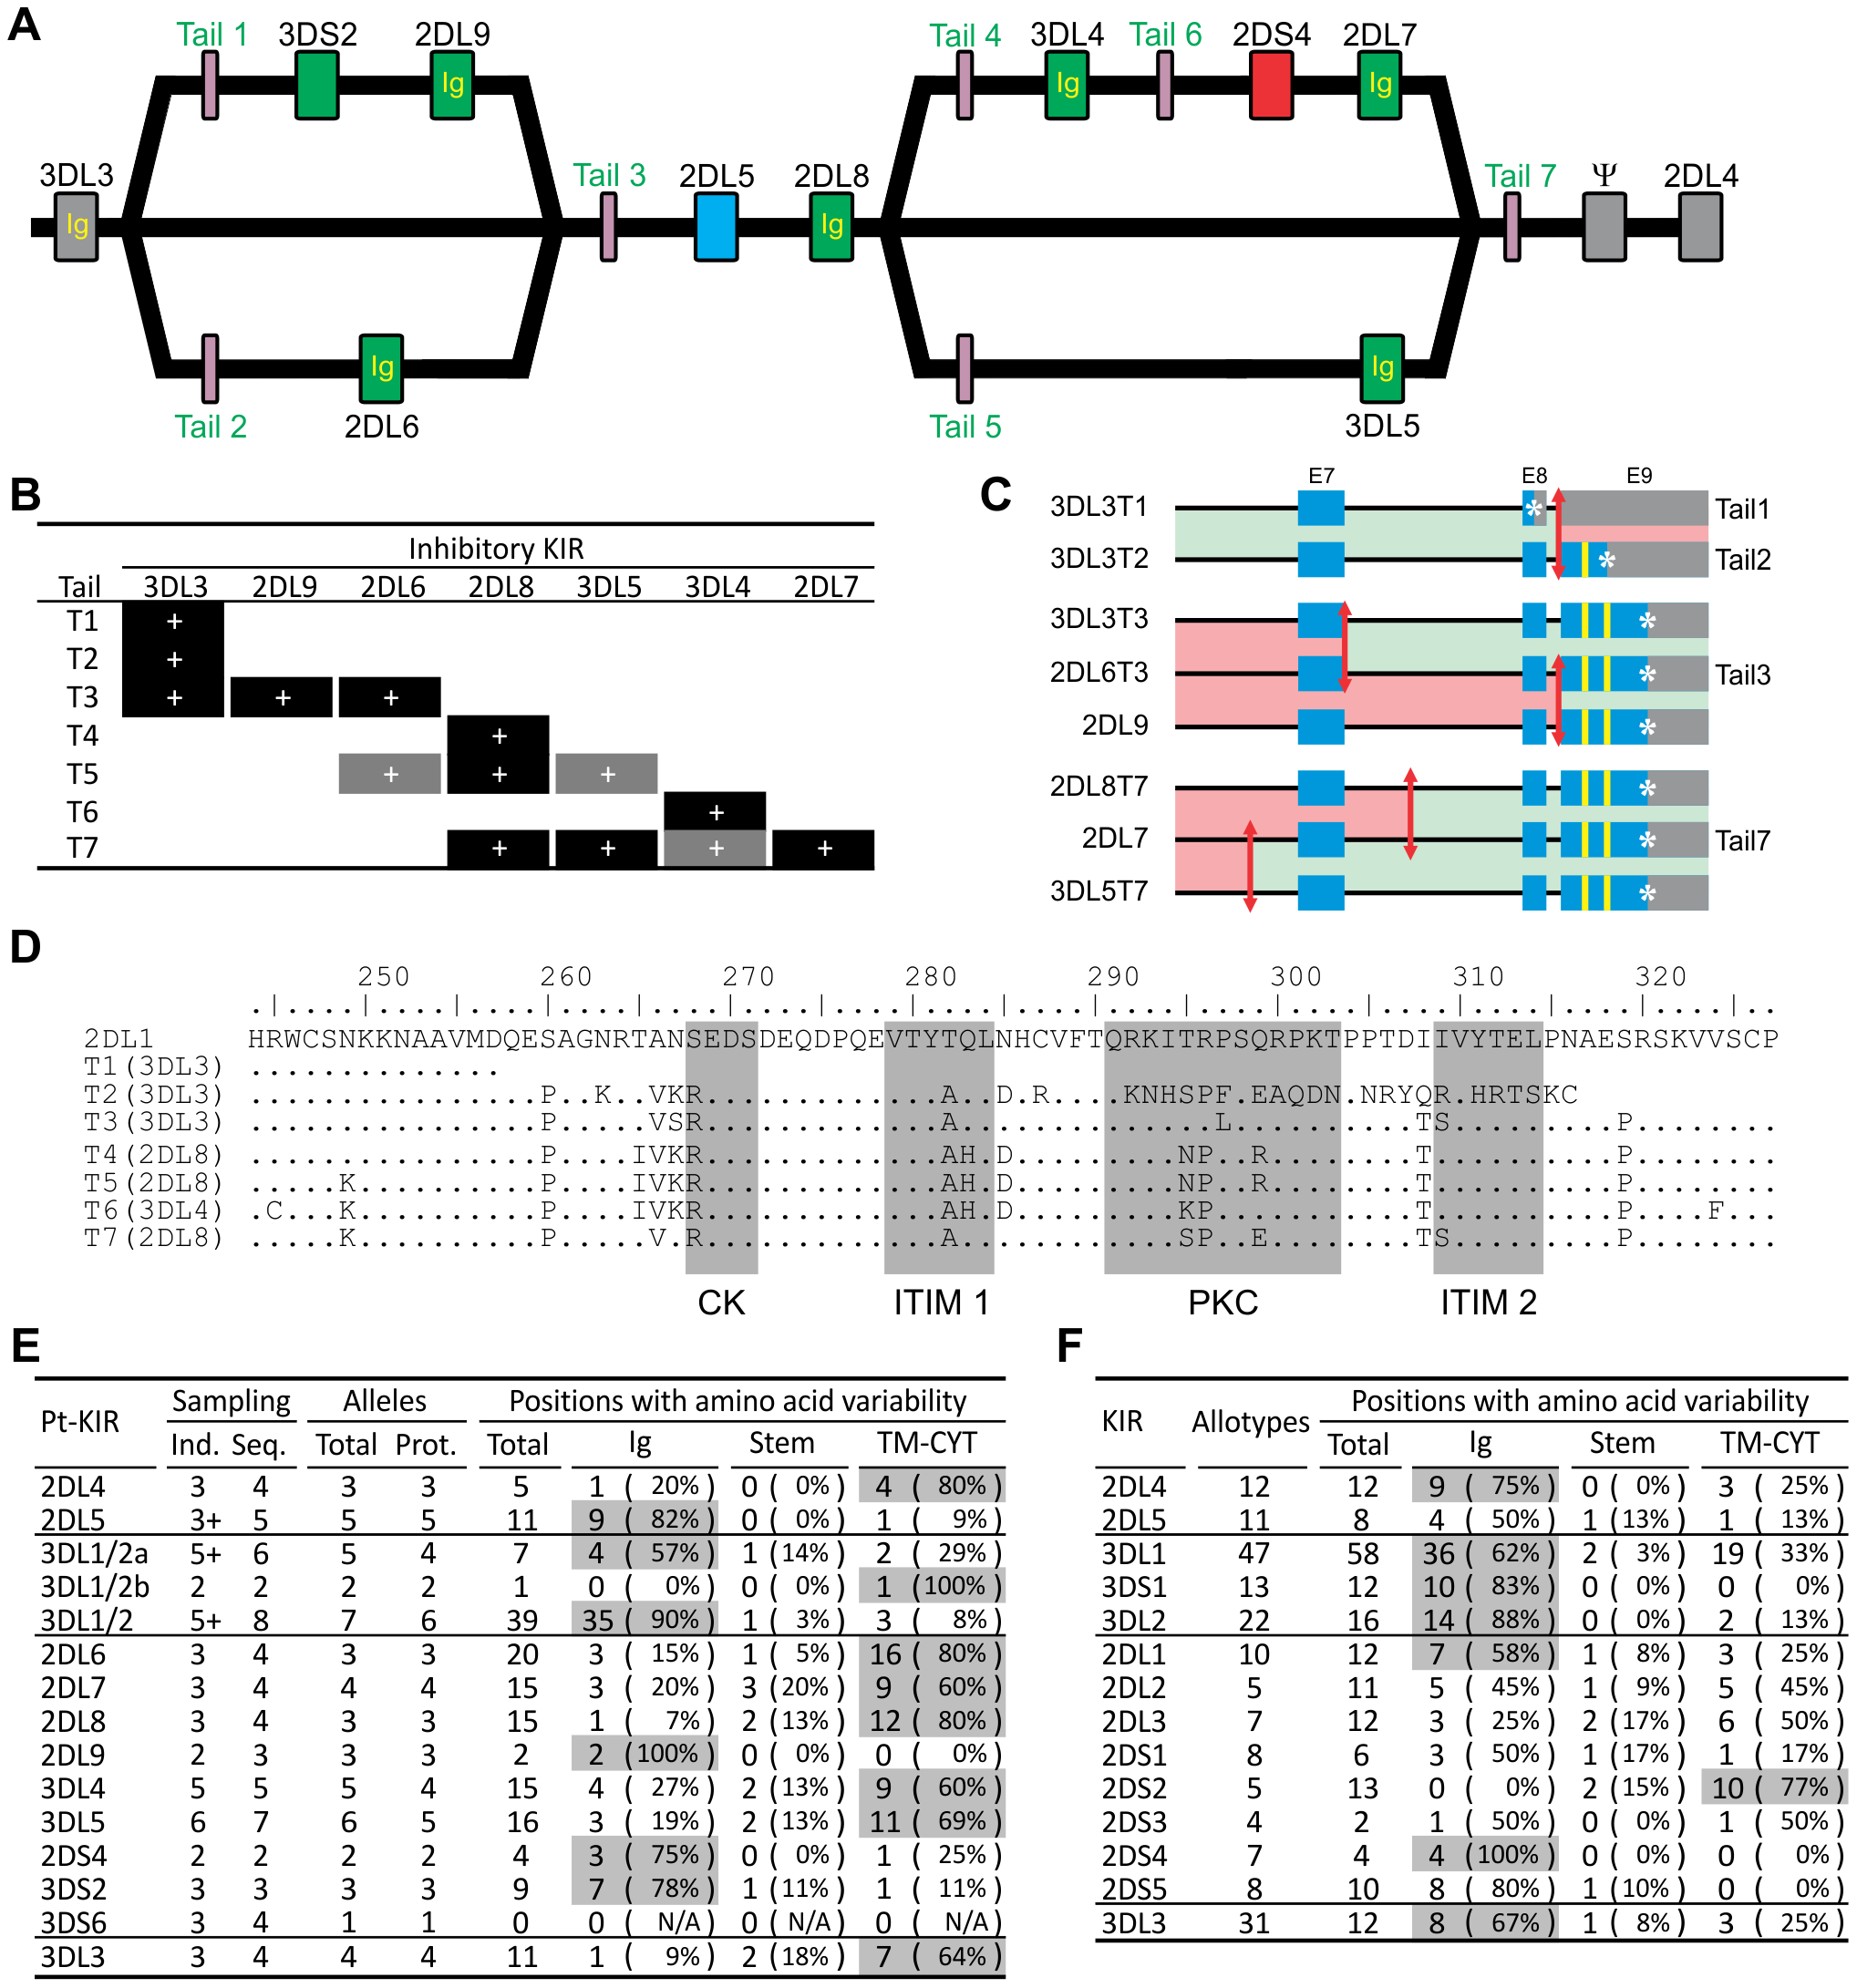 Reassorting inhibitory signaling and ligand-binding functions contributes to chimpanzee but not human <i>KIR</i> allelic diversity.